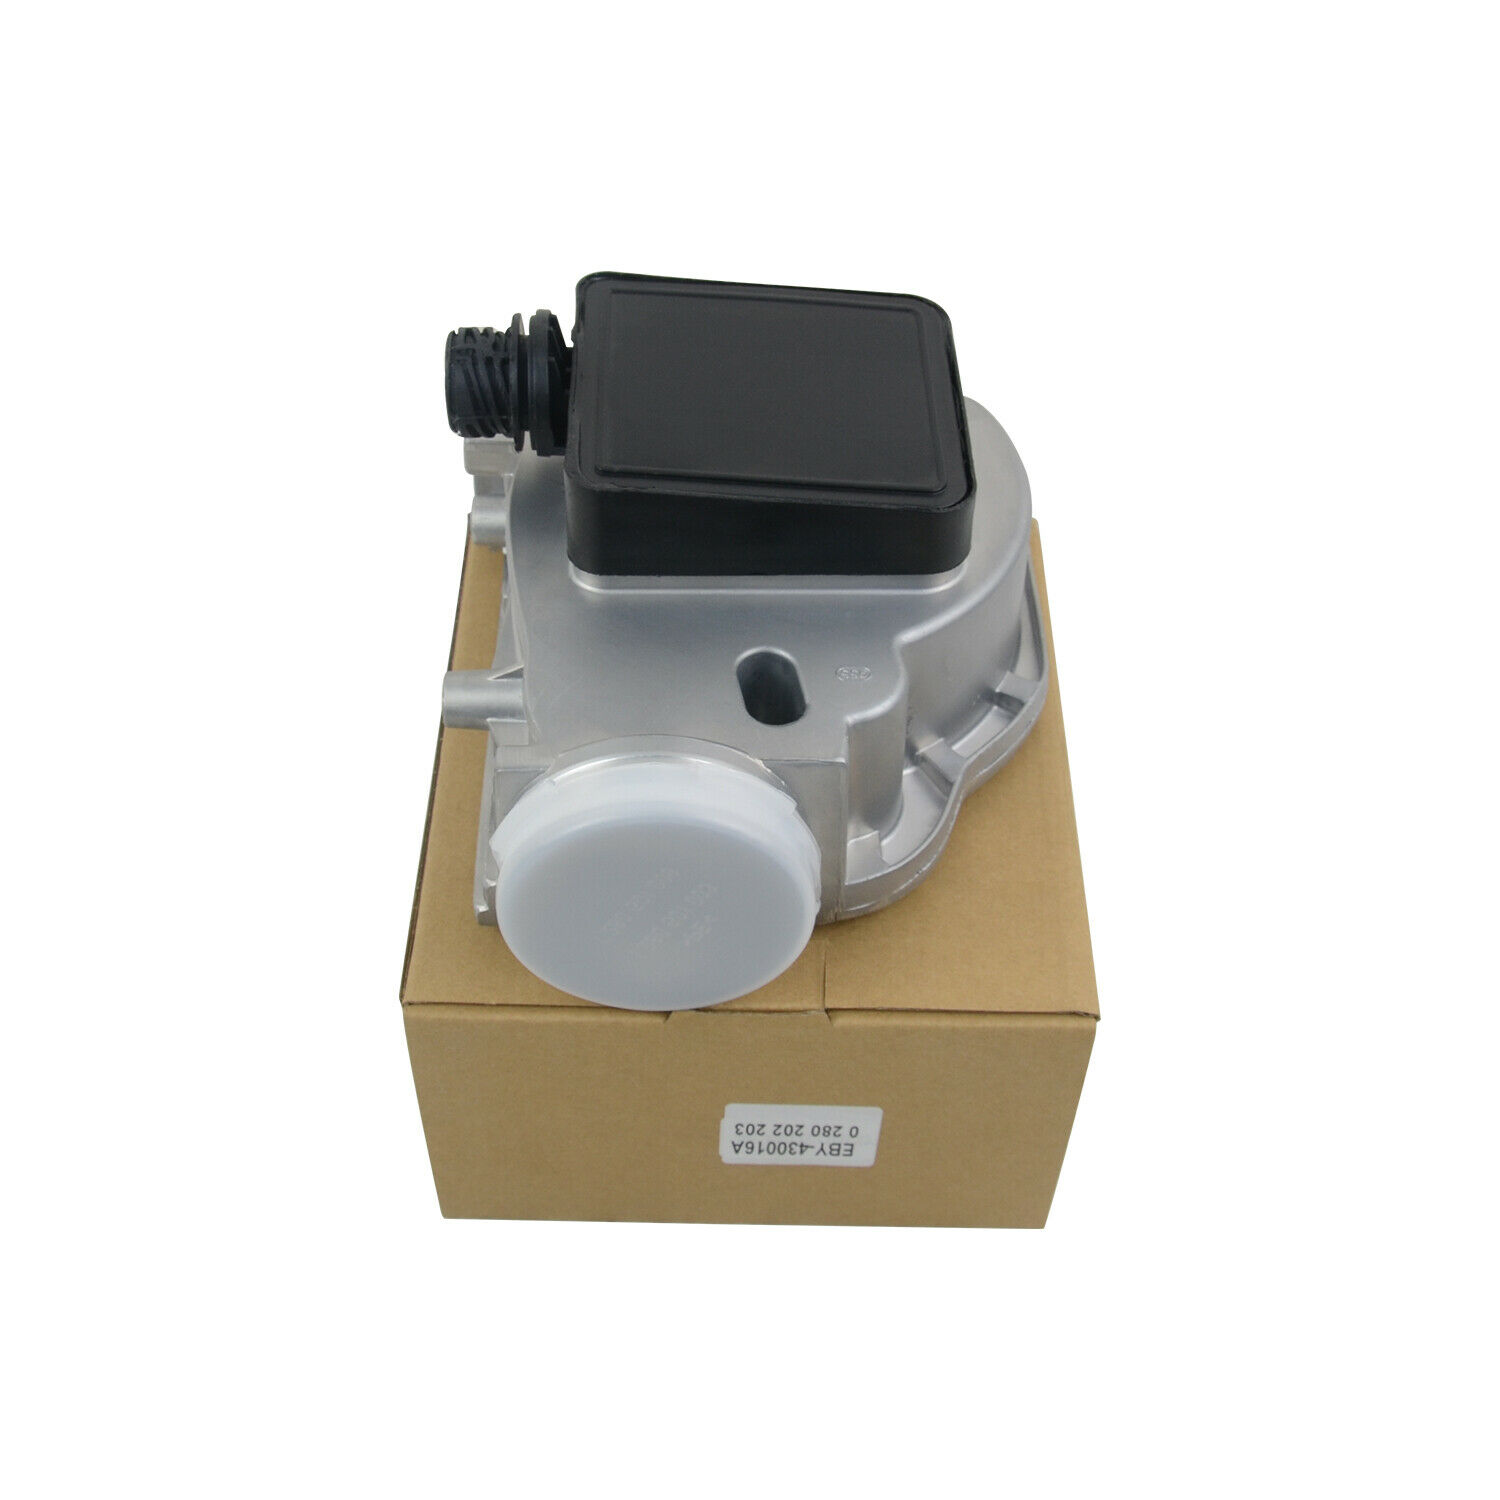 AP03 0280202203 MAF Mass Air Flow Sensor Meter M40 M43 M42 for <font><b>BMW</b></font> <font><b>E30</b></font> E34 E36 <font><b>318i</b></font> 518i 1.8L image